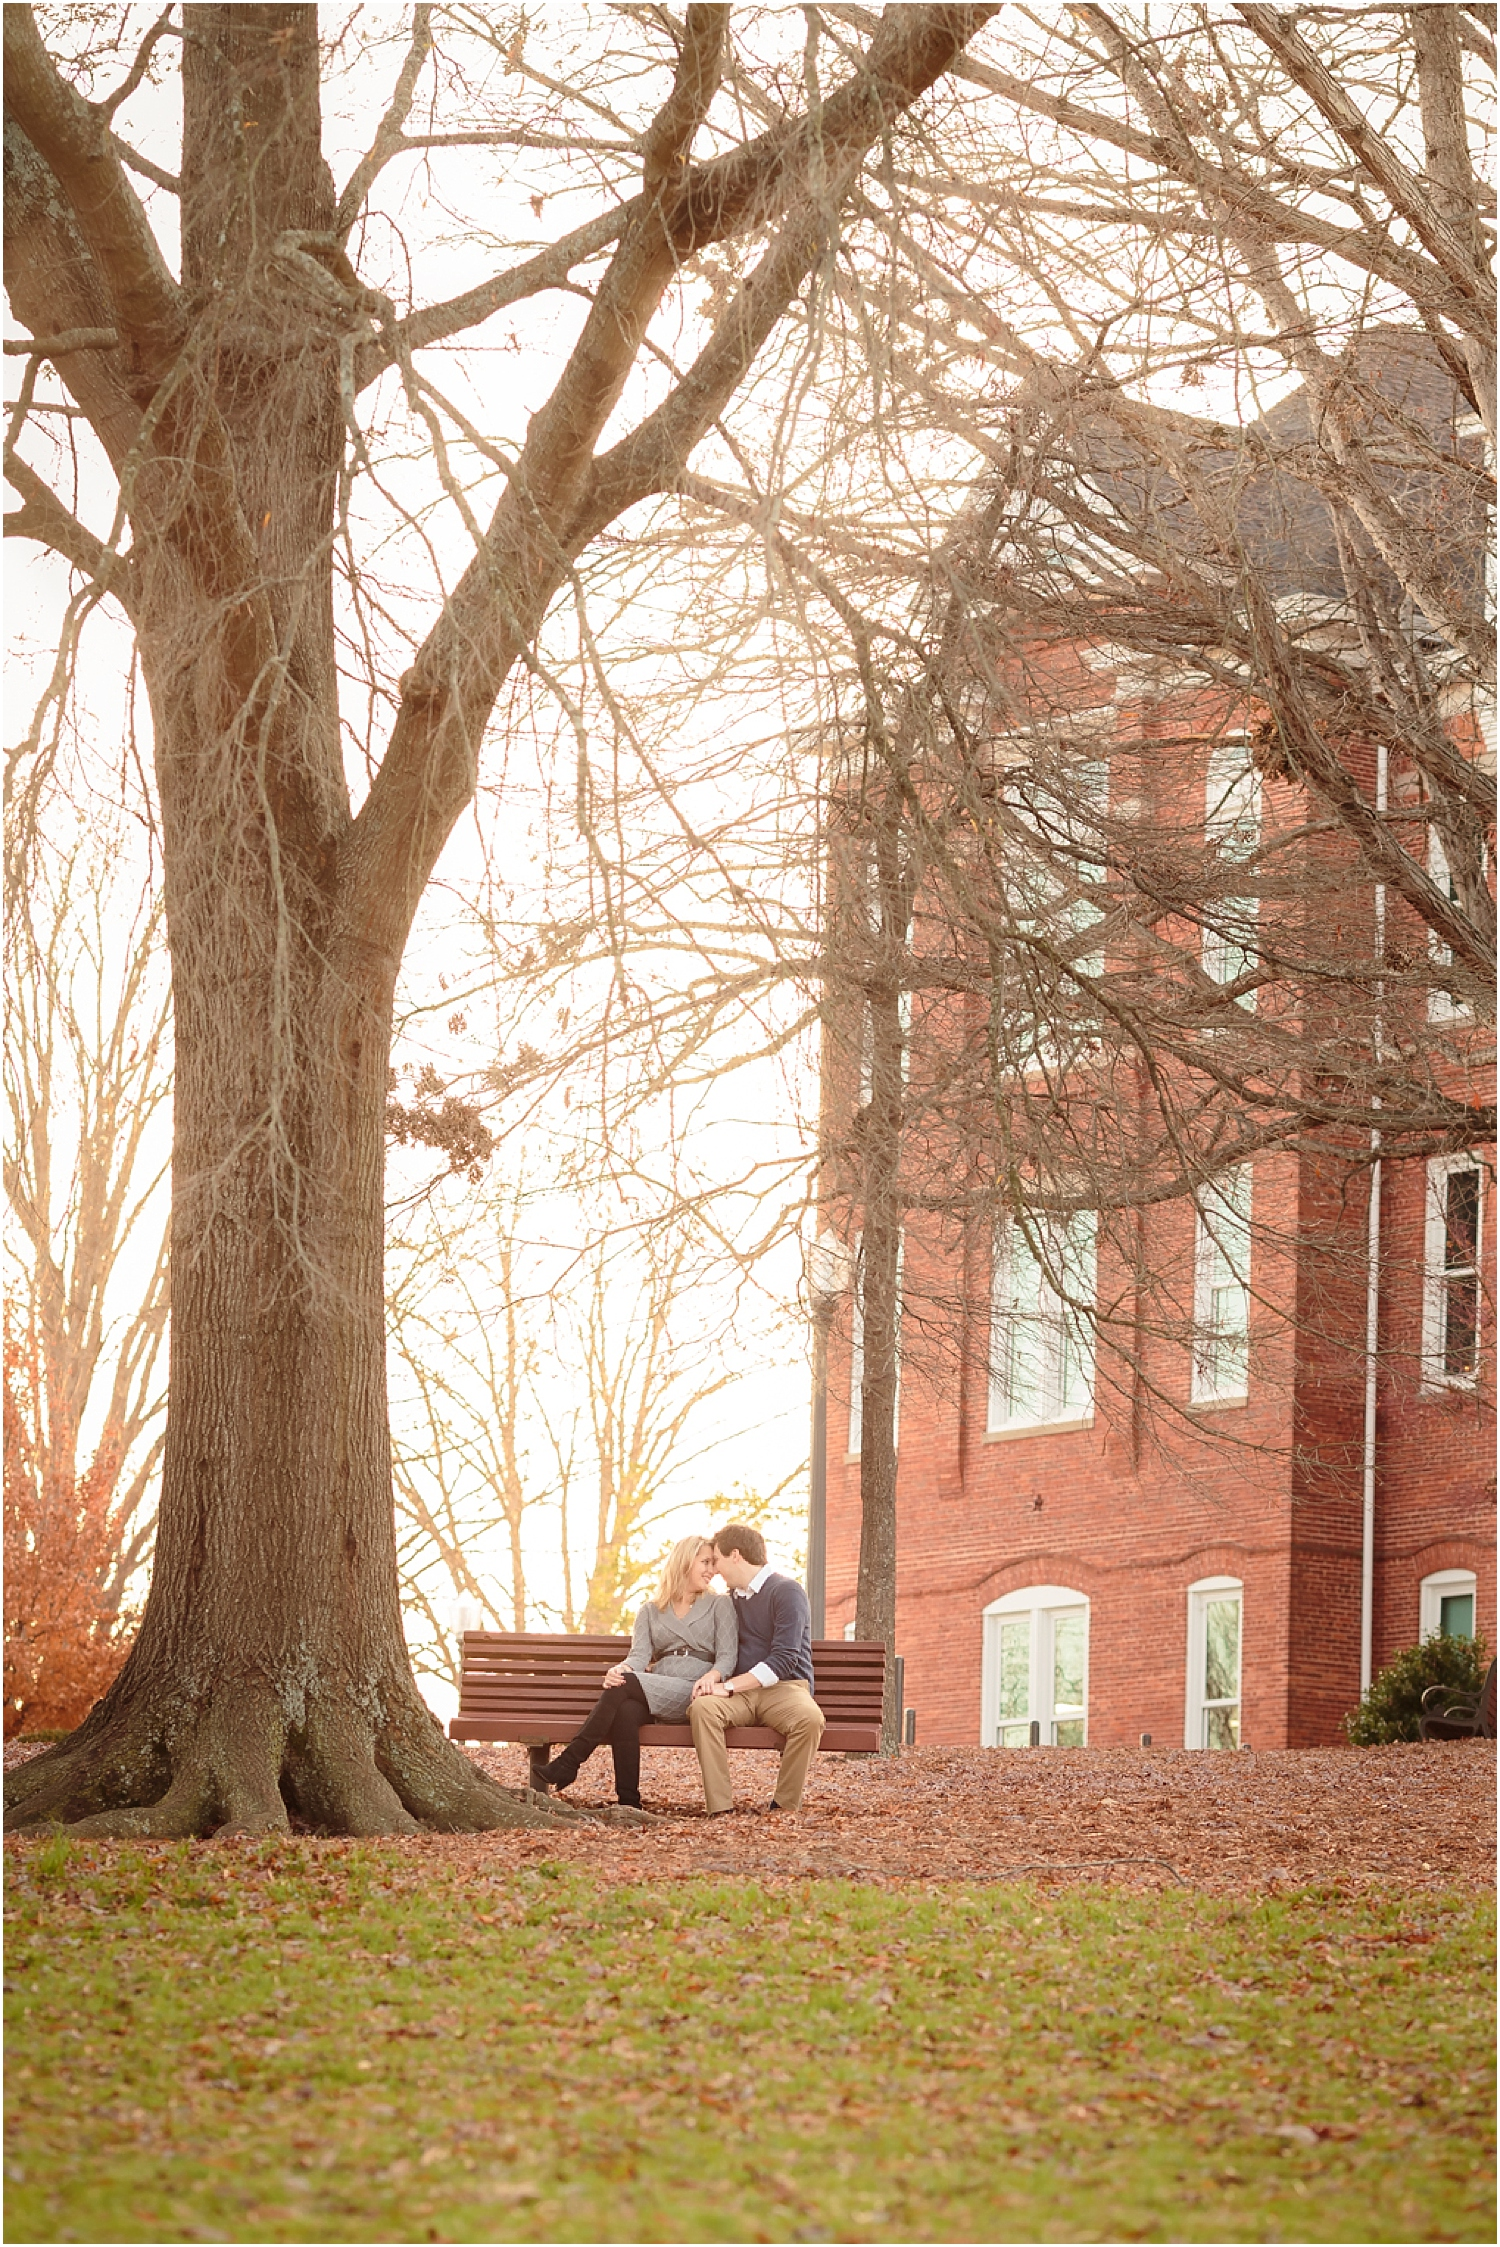 141207--0297clemson-engagement-shoot_blog.jpg